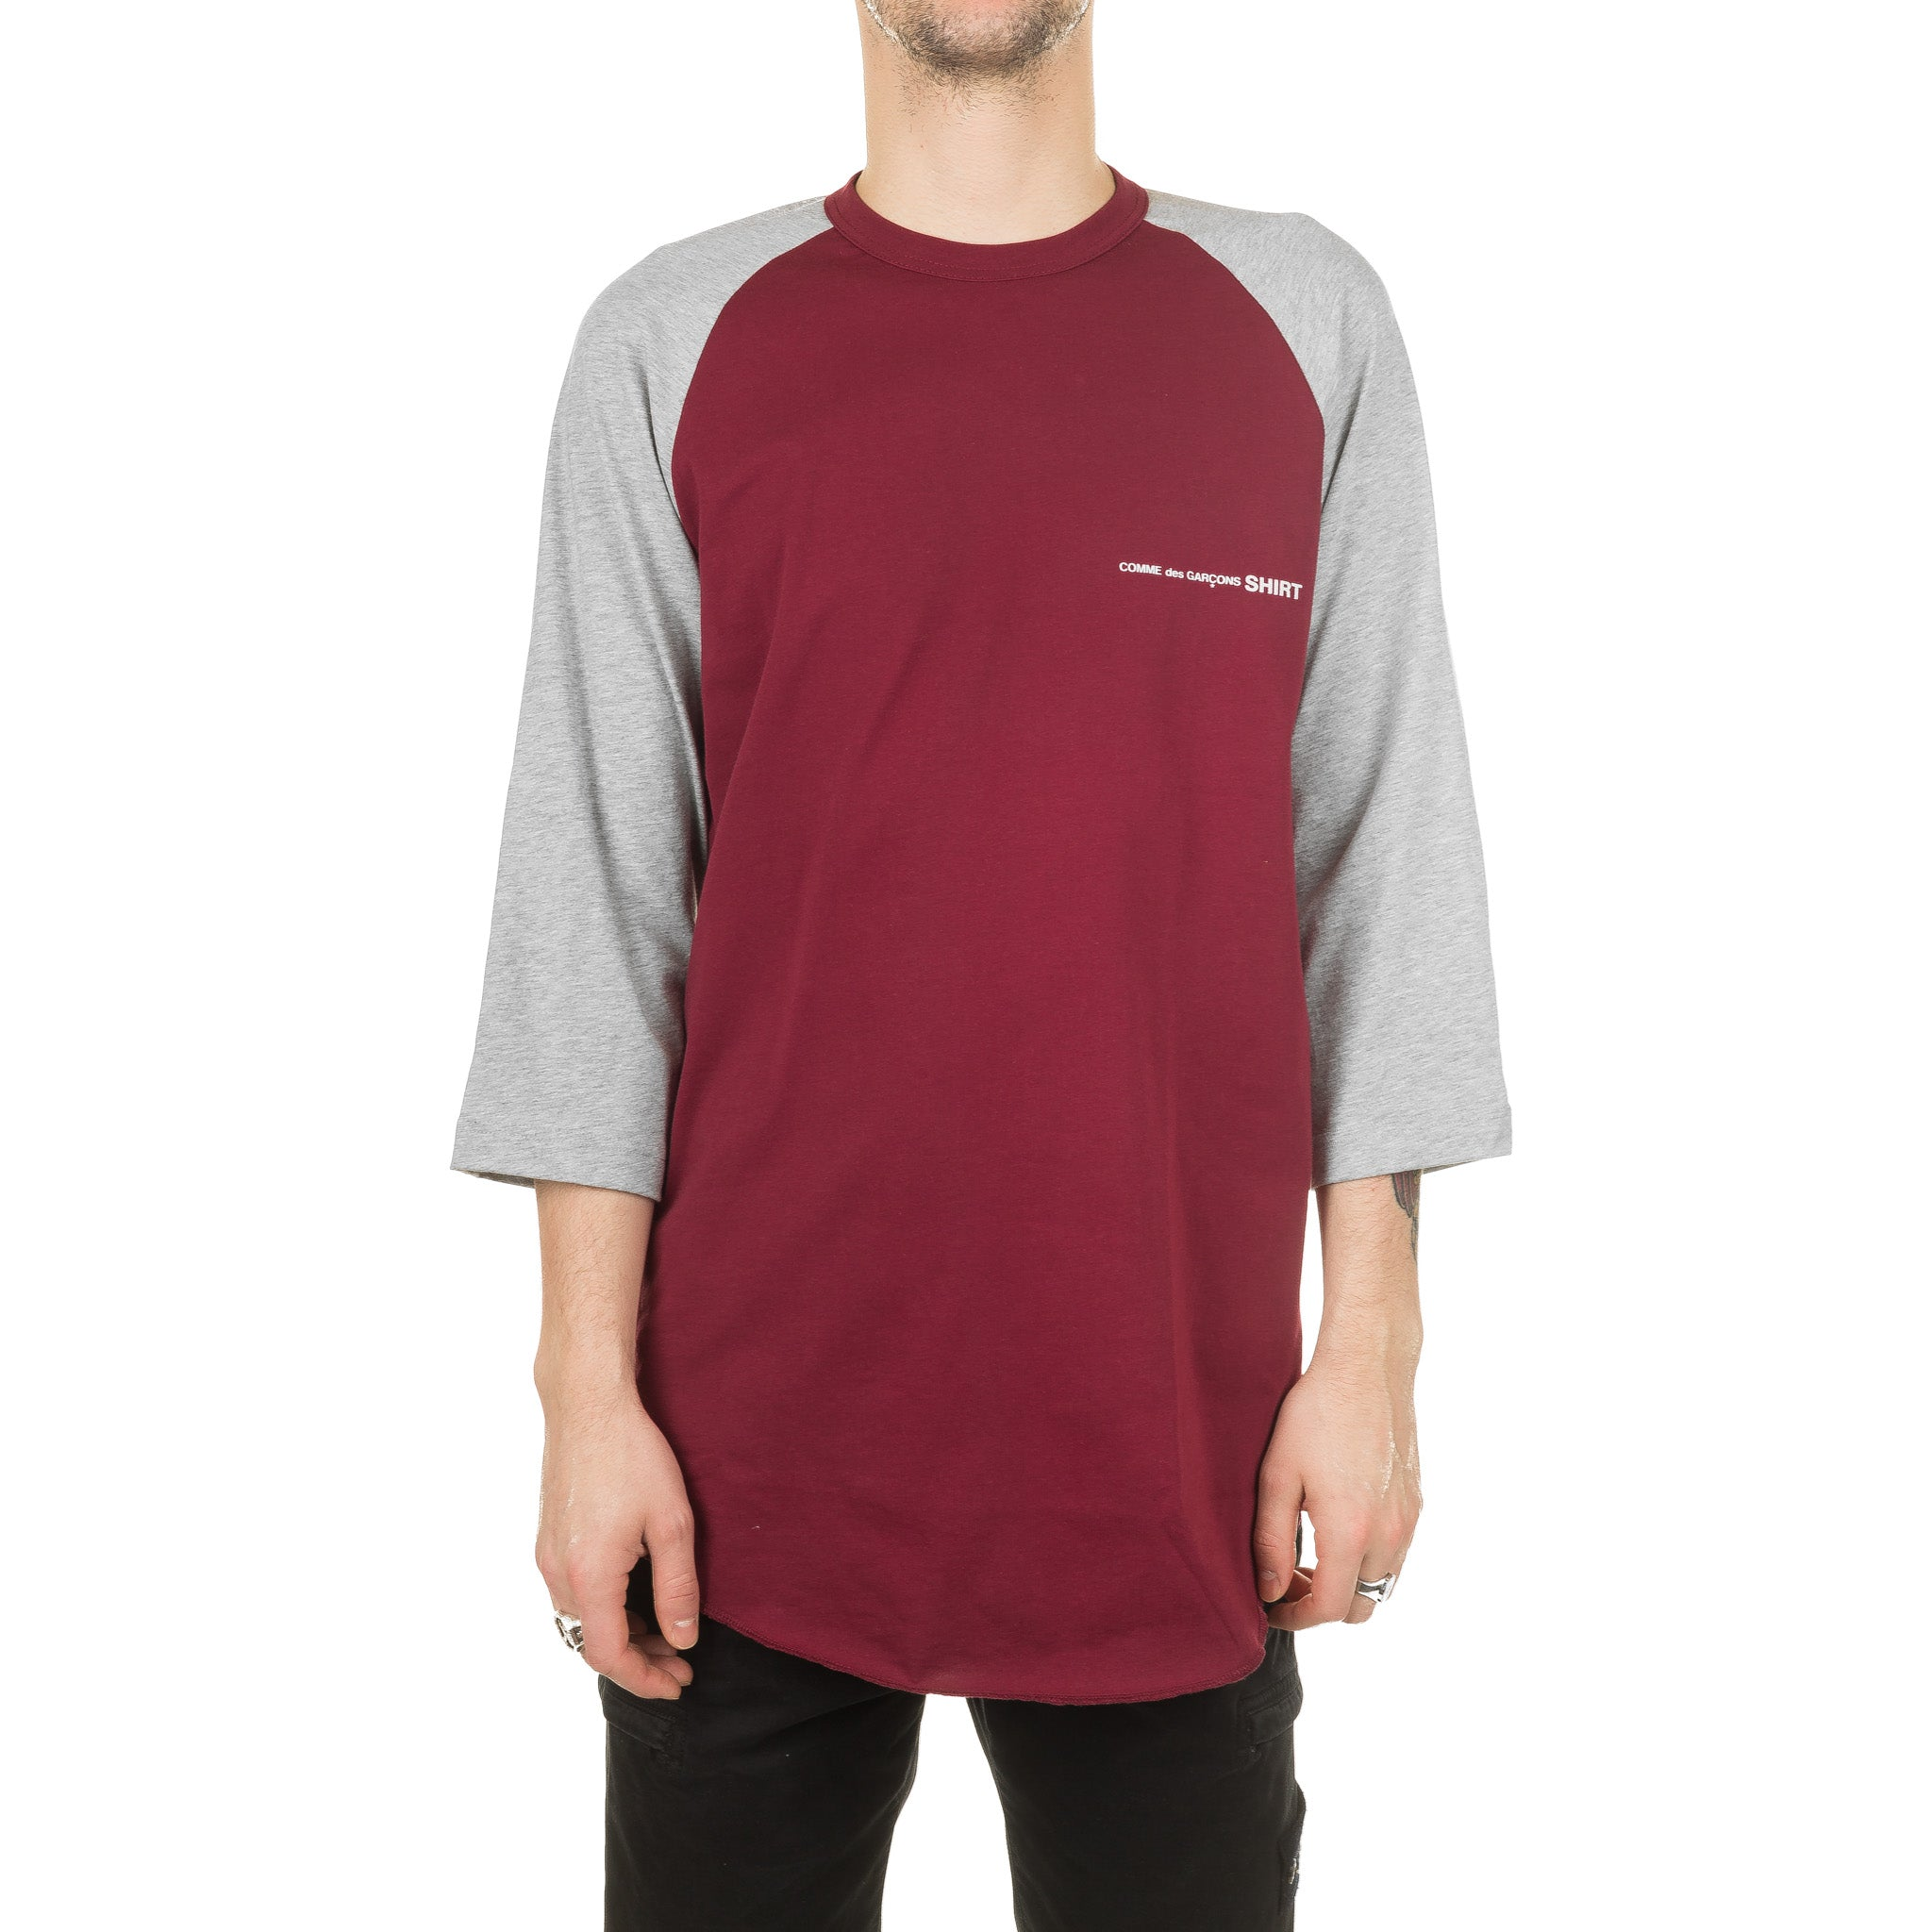 CDG Shirt Baseball Tee S28120 Burgundy